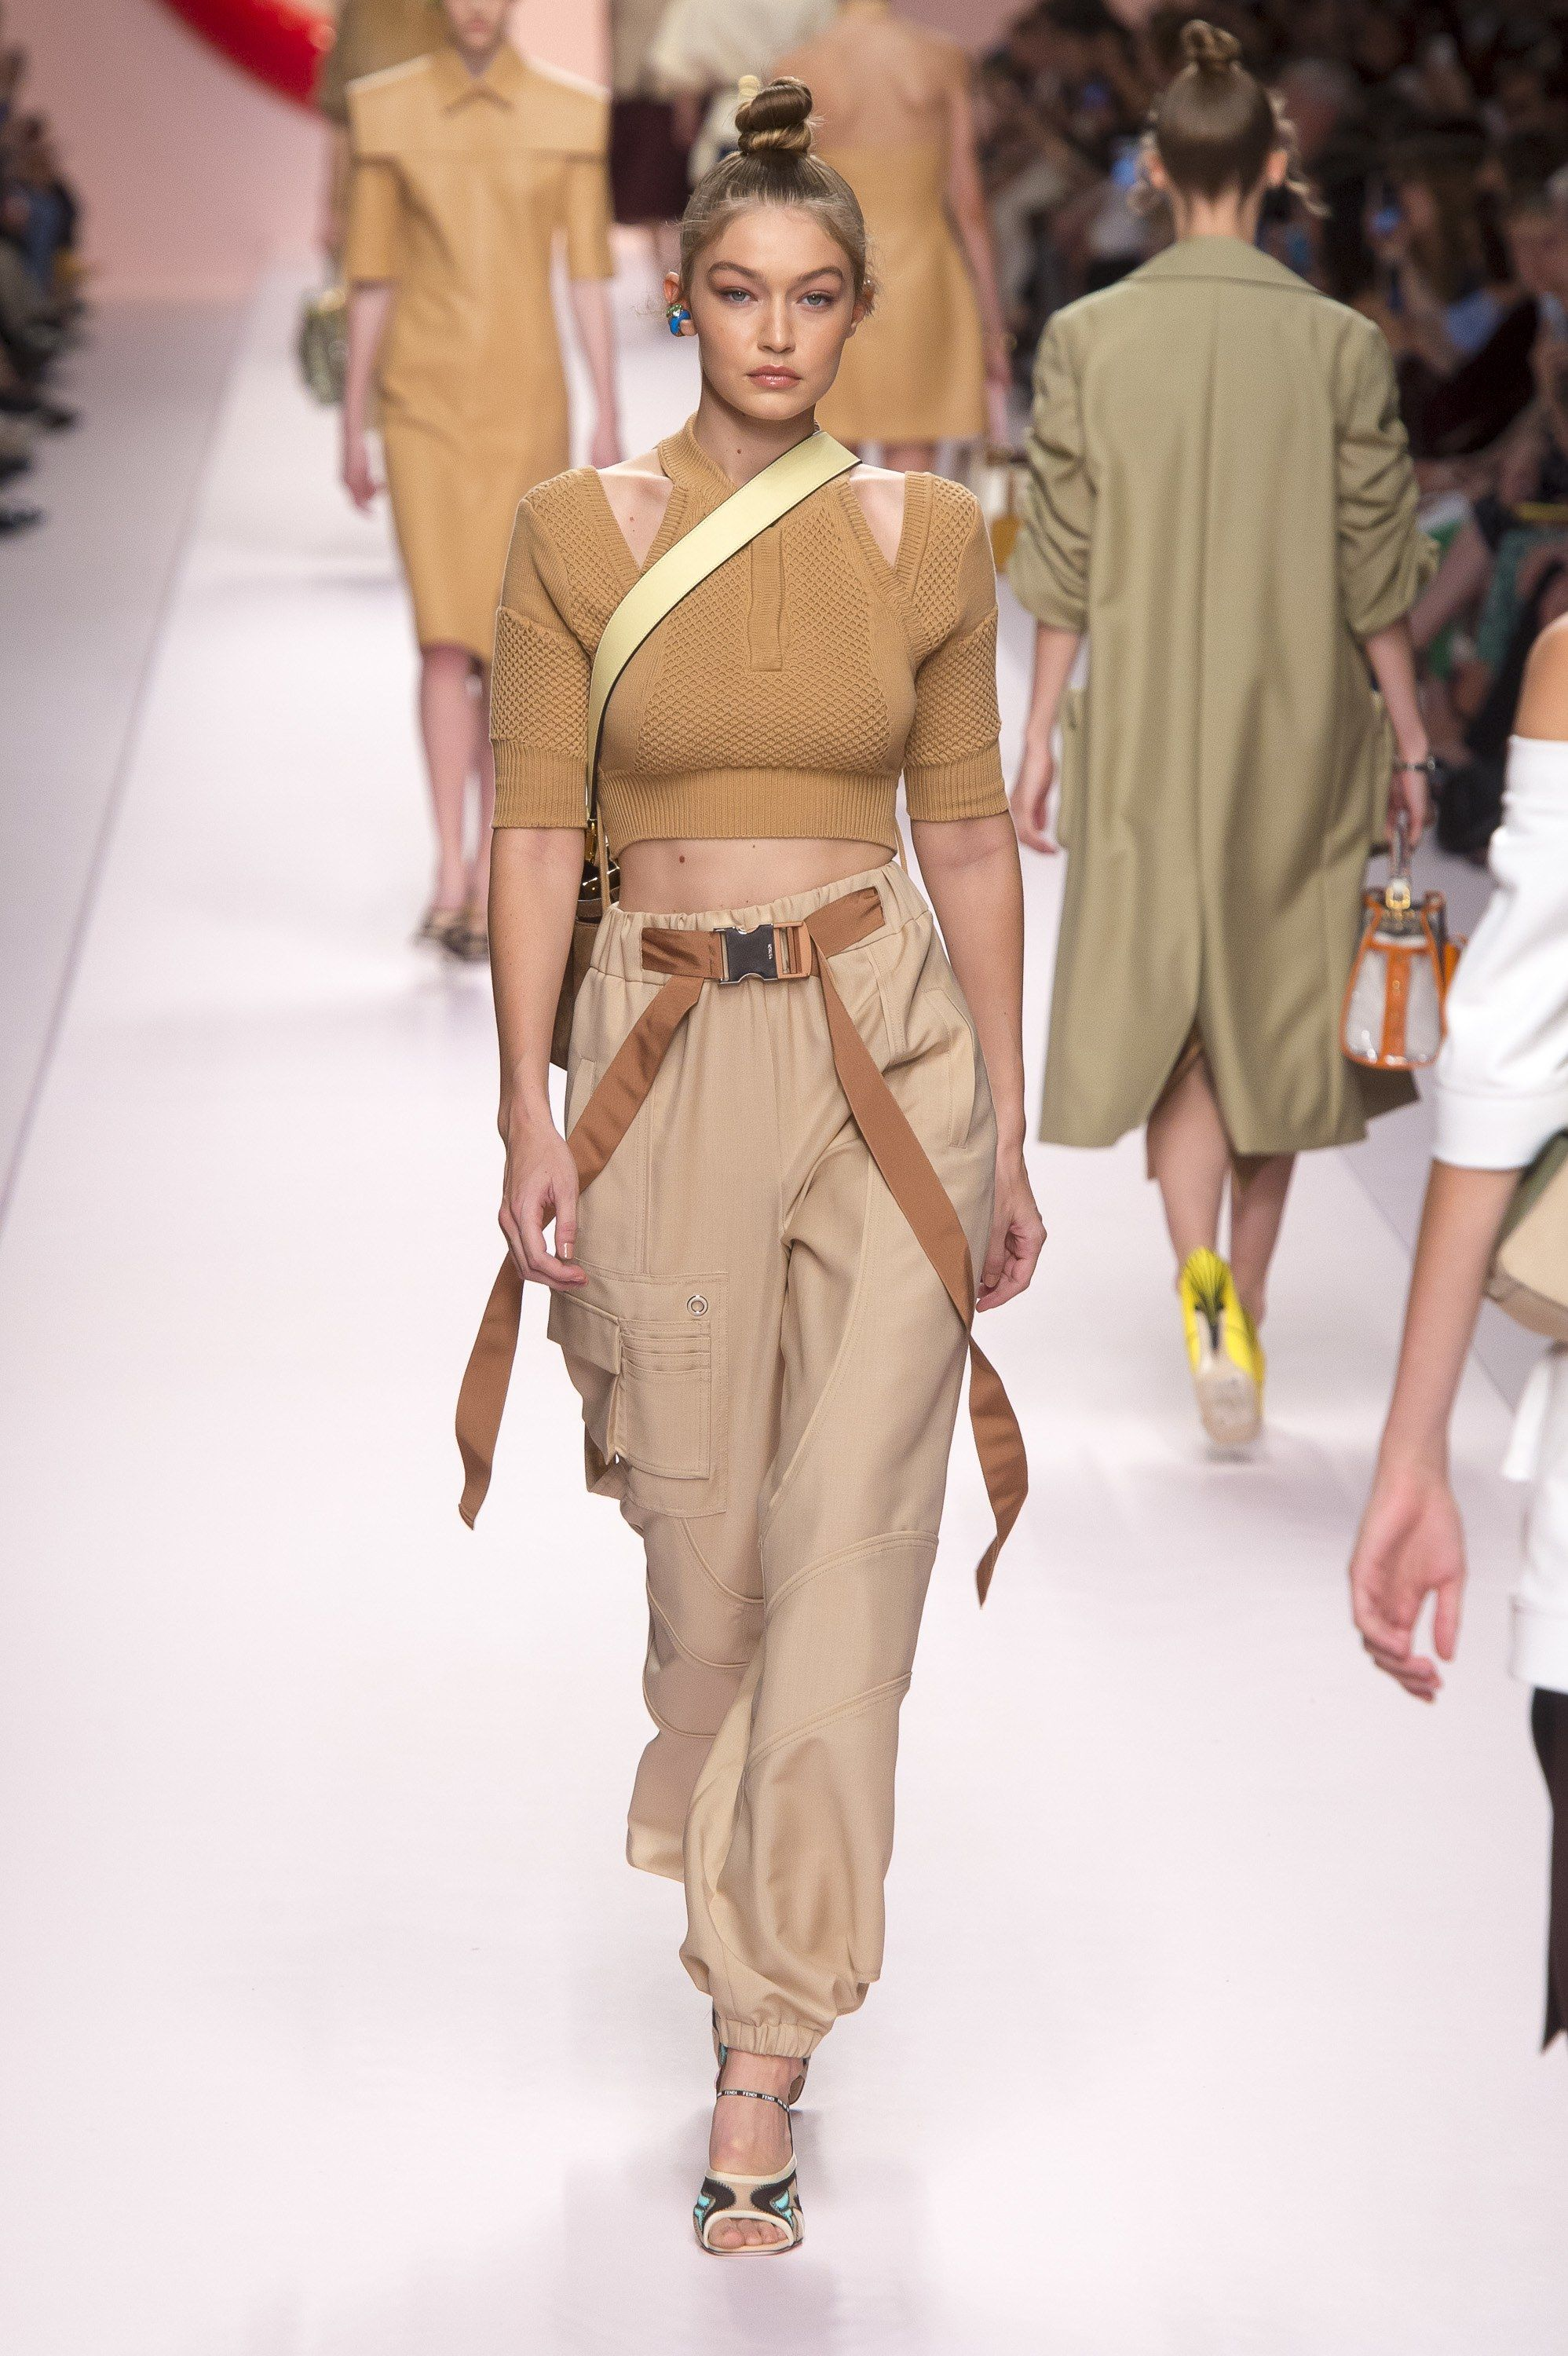 223c46cf37 Fendi Spring 2019 Ready-to-Wear Collection - Vogue